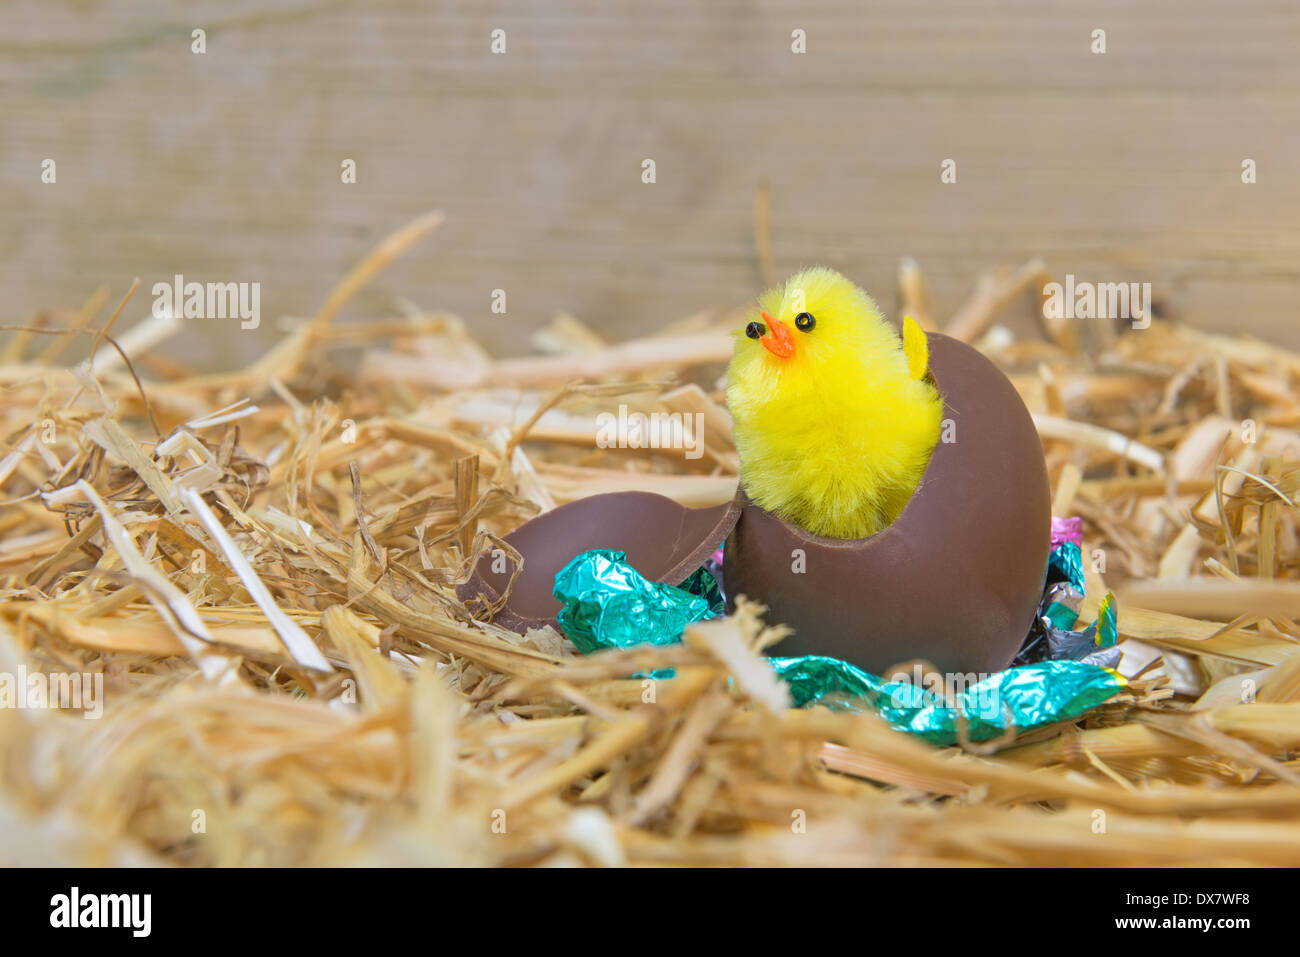 A fluffy yellow Easter chick breaking out from a chocolate egg in a barn. - Stock Image